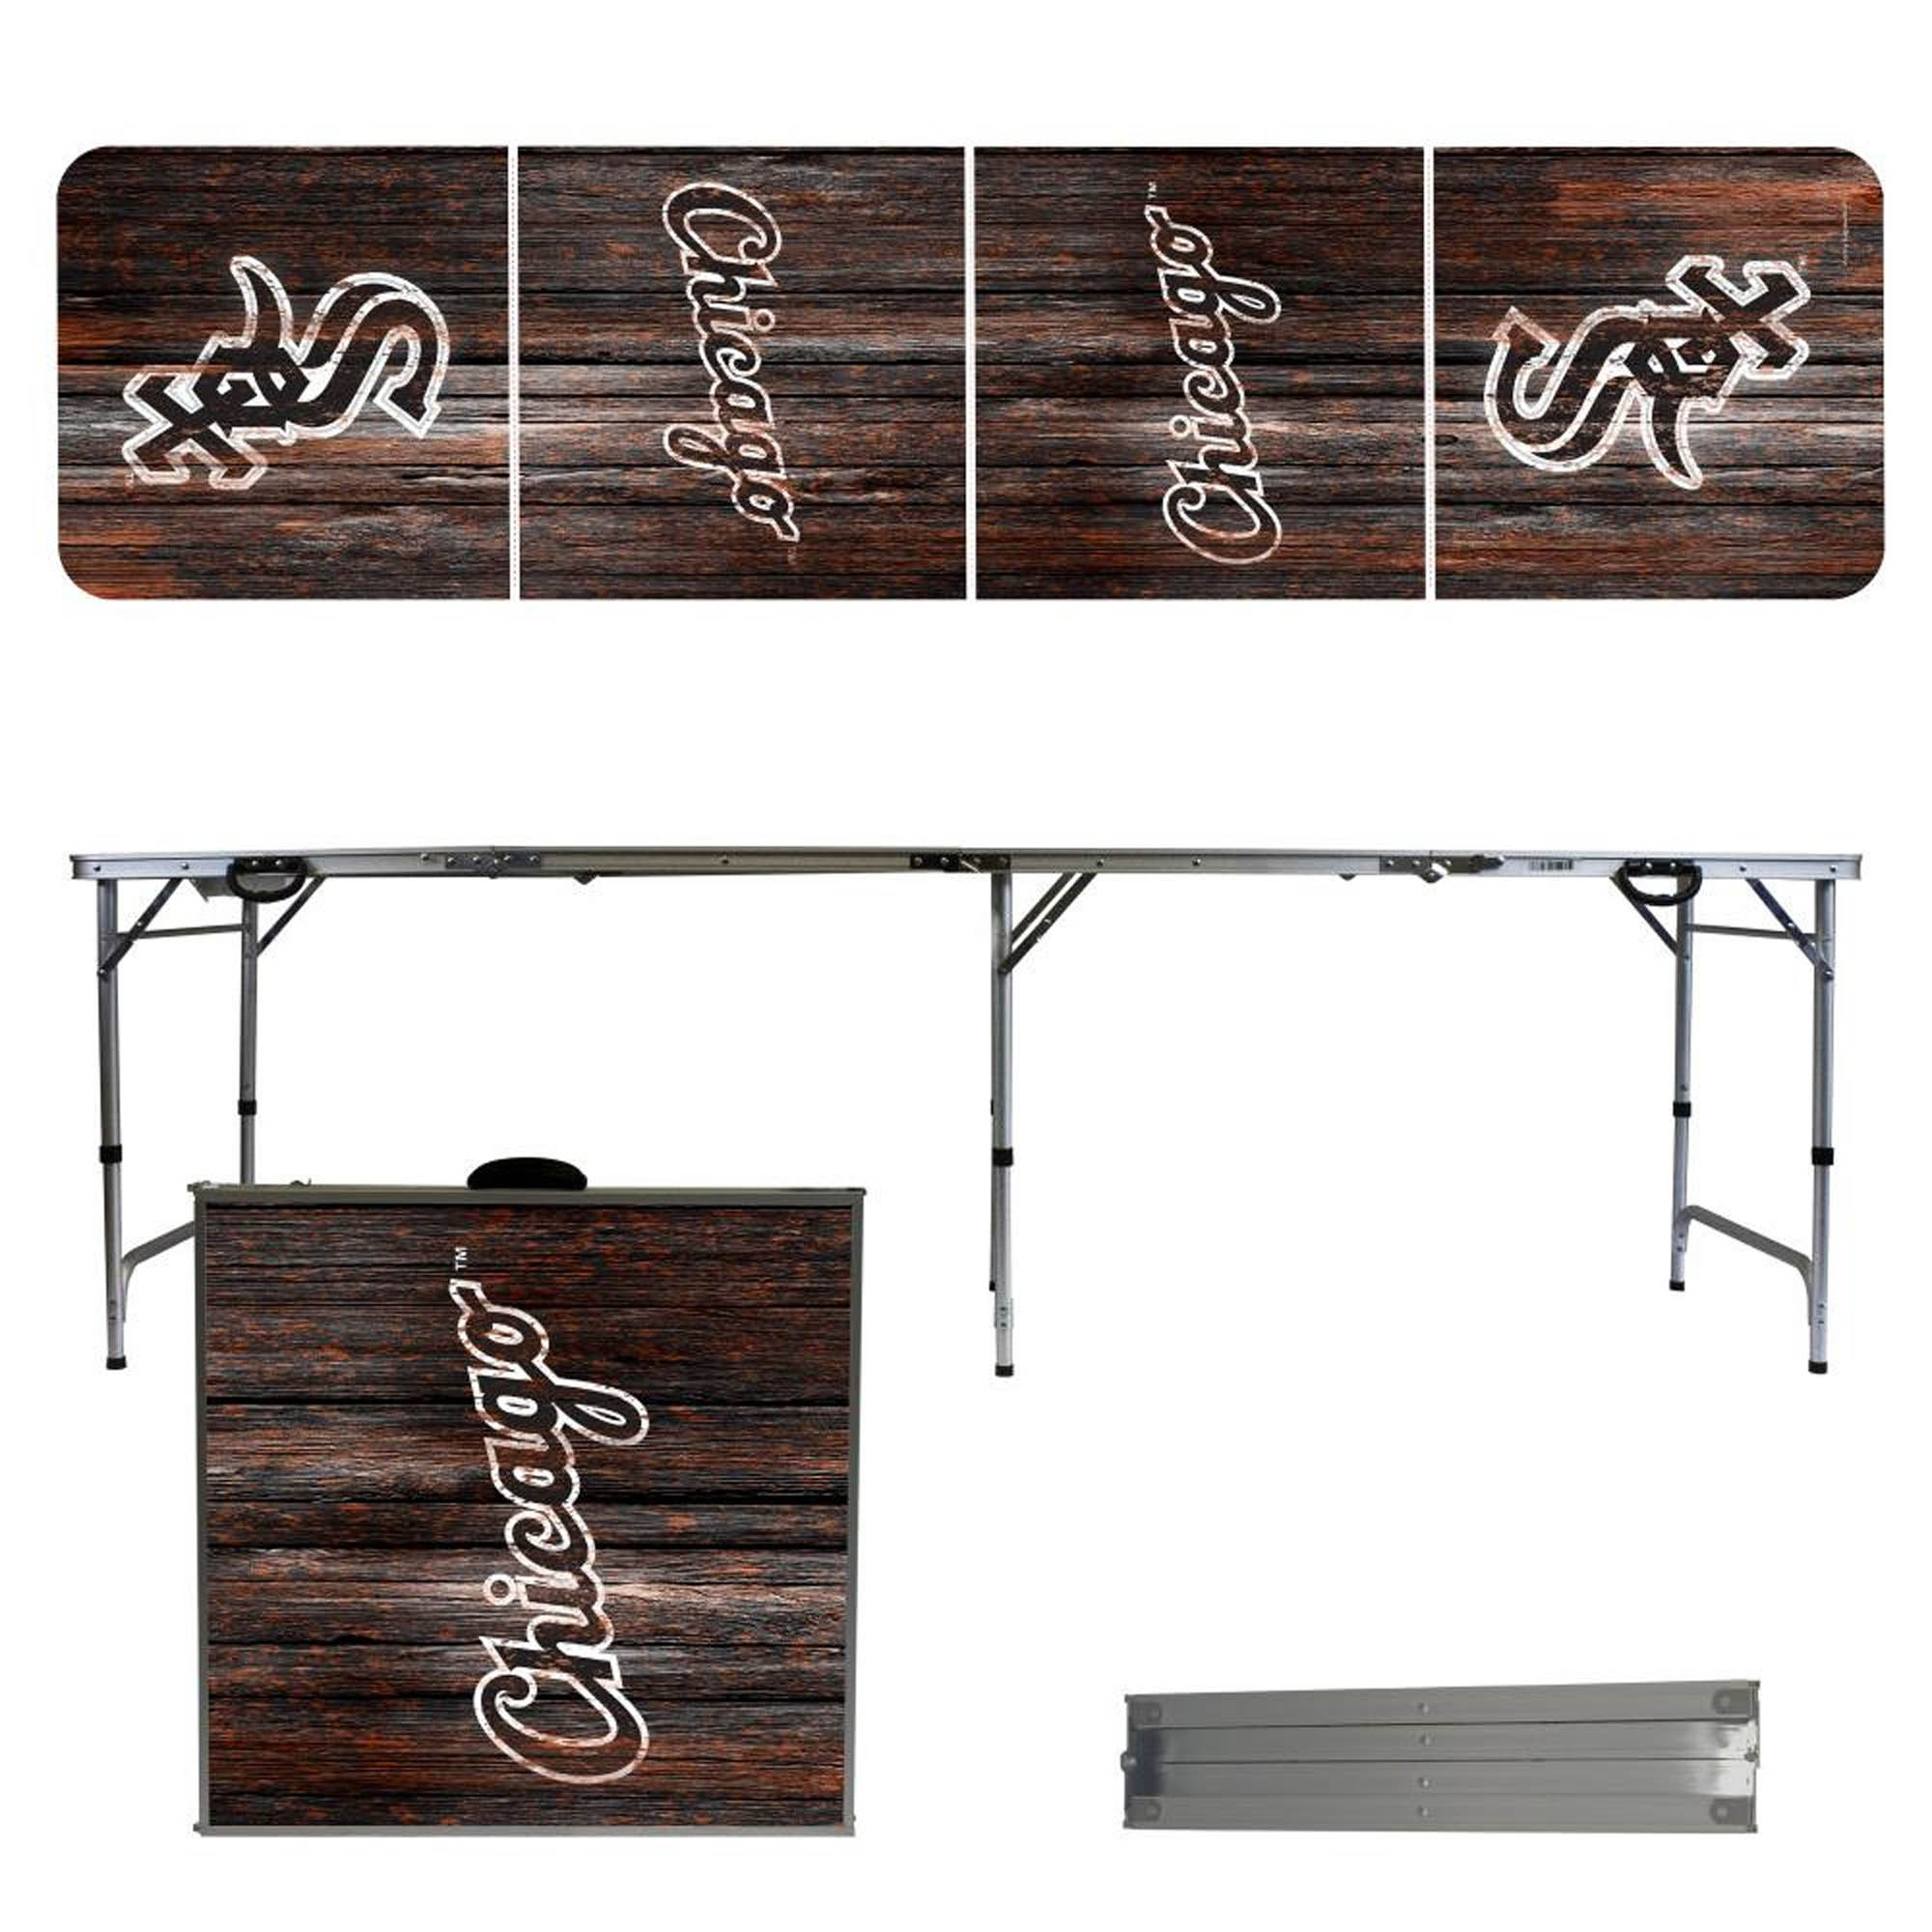 Chicago White Sox Weathered Design 8' Portable Folding Tailgate Table - No Size